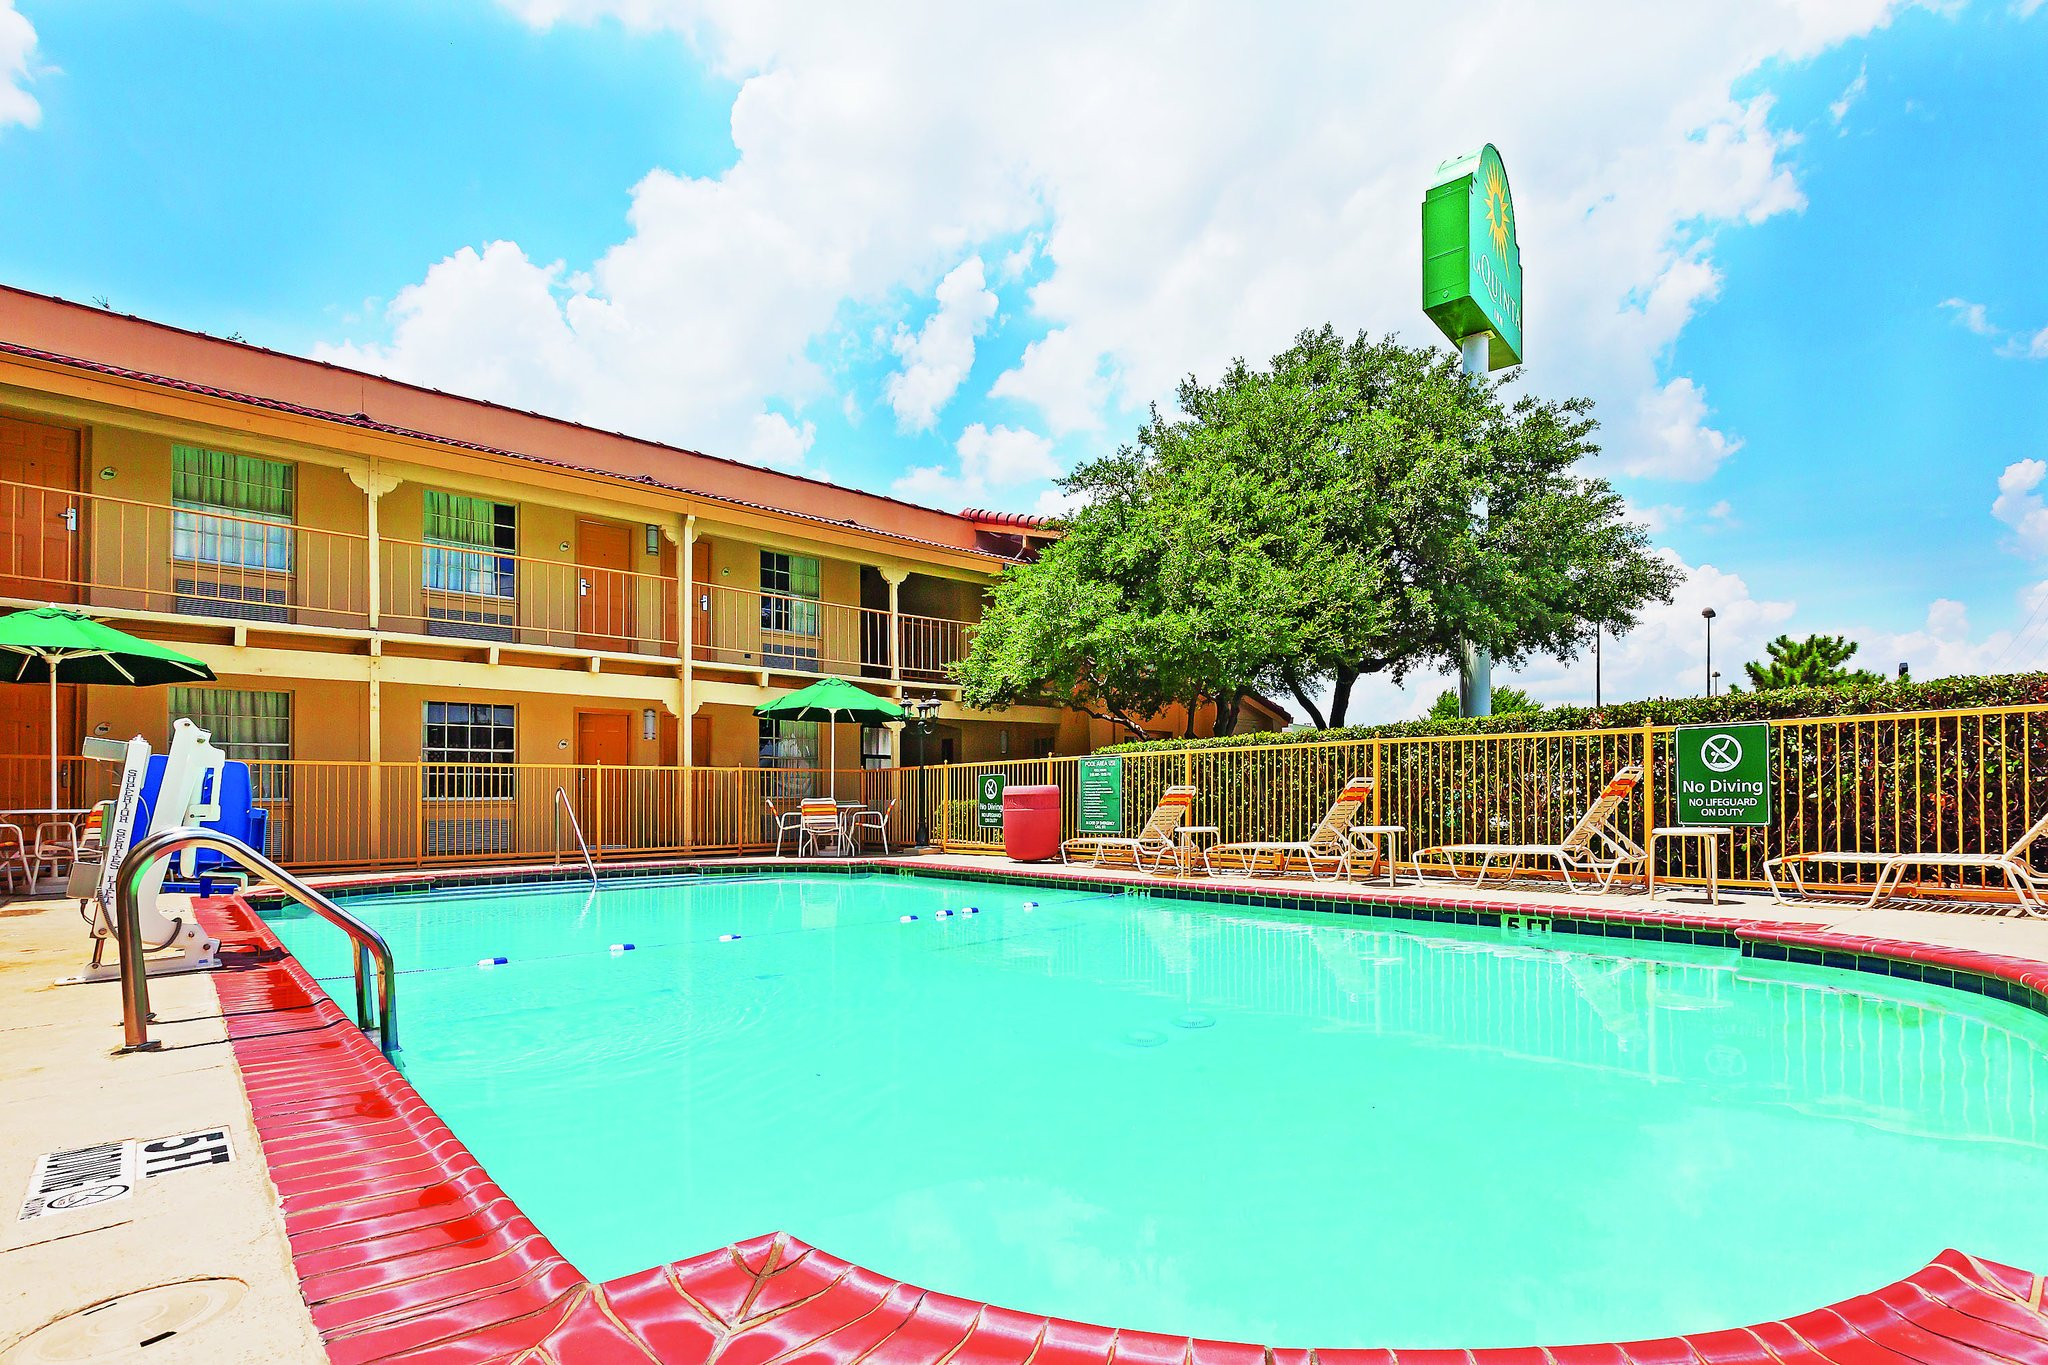 La Quinta Inn Dallas Uptown